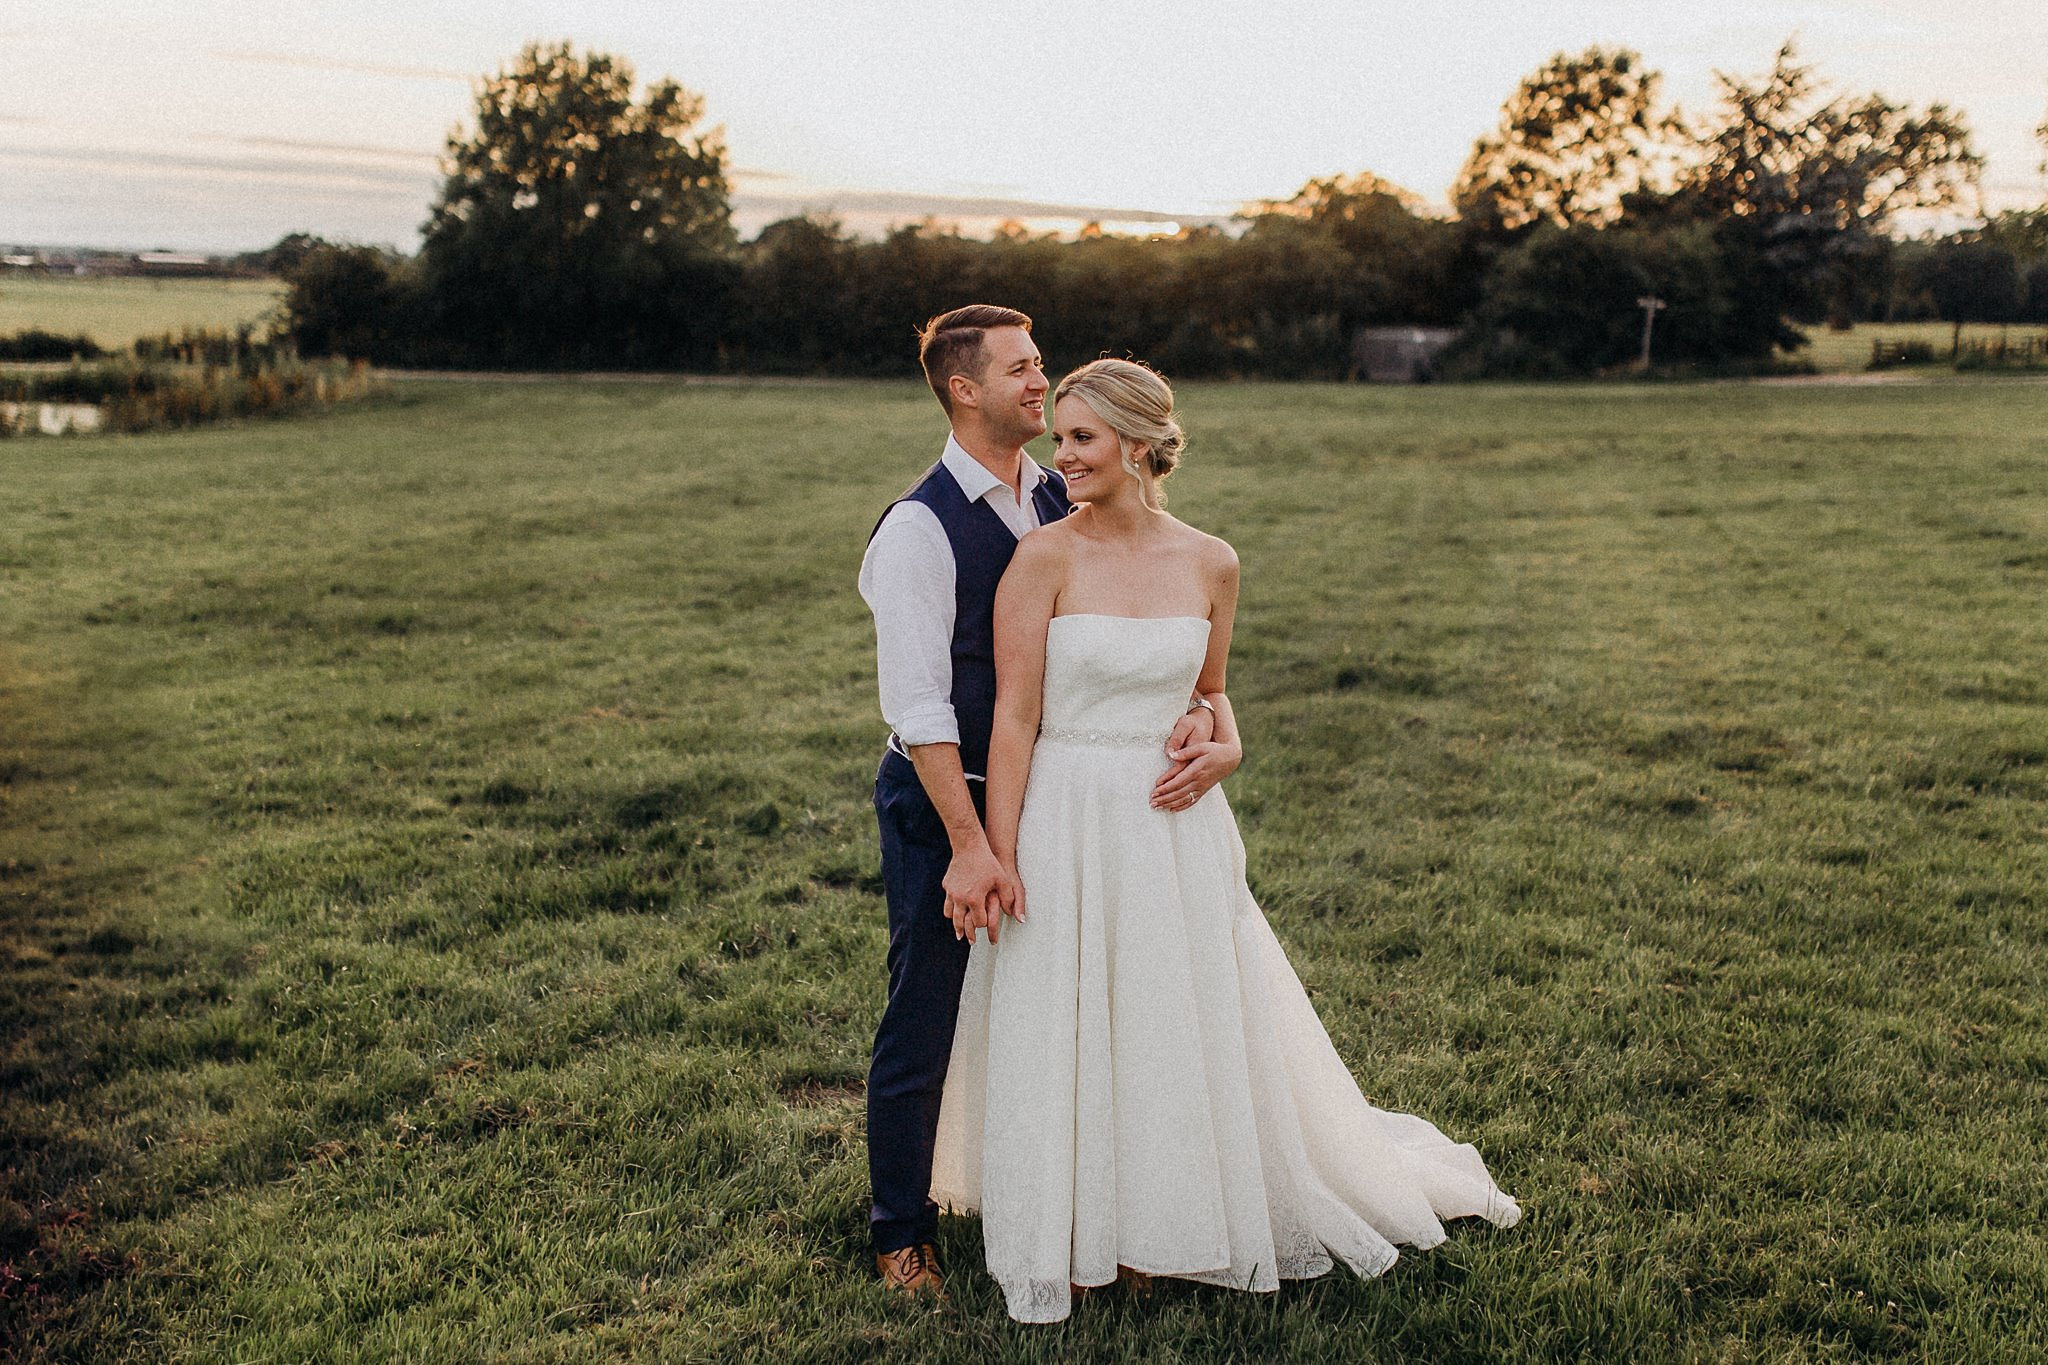 Pre Planning Your Wedding Photos